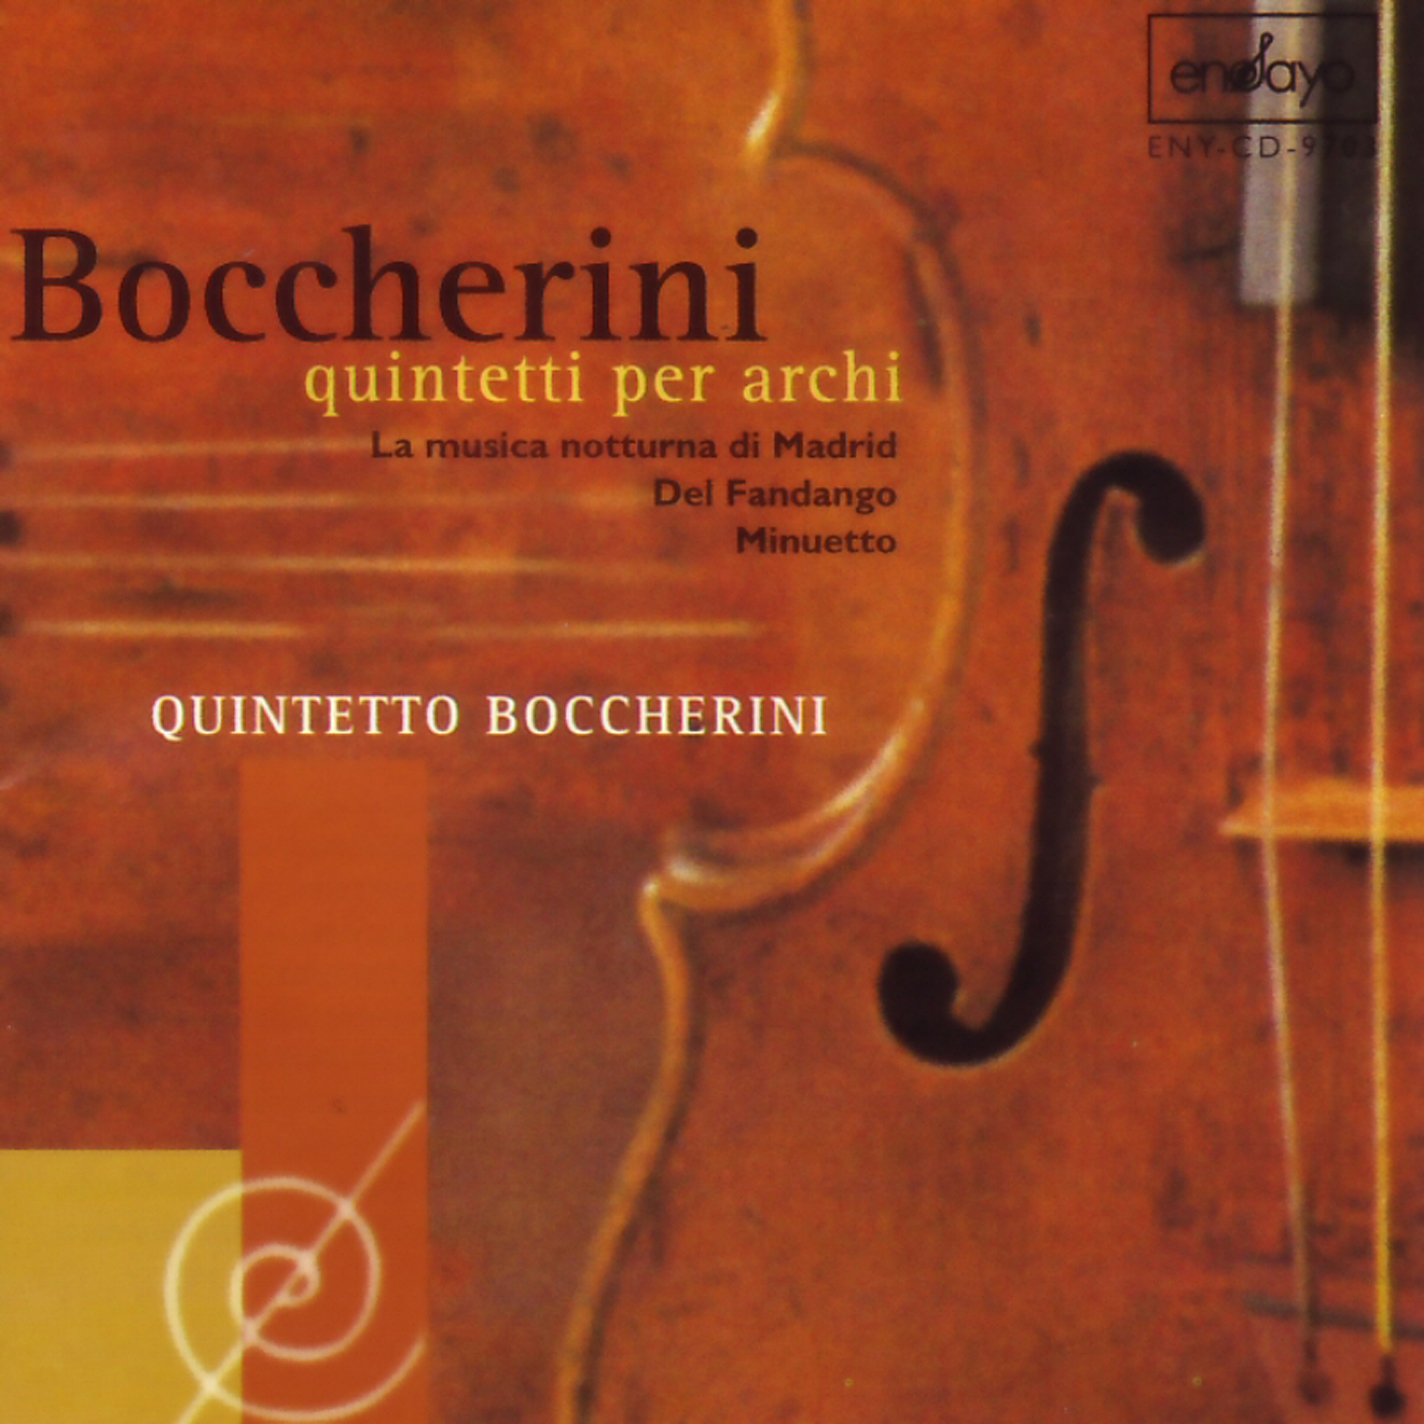 String Quintet No. 17 in A Major, Op. 13, No. 5, G. 281, String Quintet No. 17 in A Major, Op. 13, No. 5, G. 281: III. Menuet